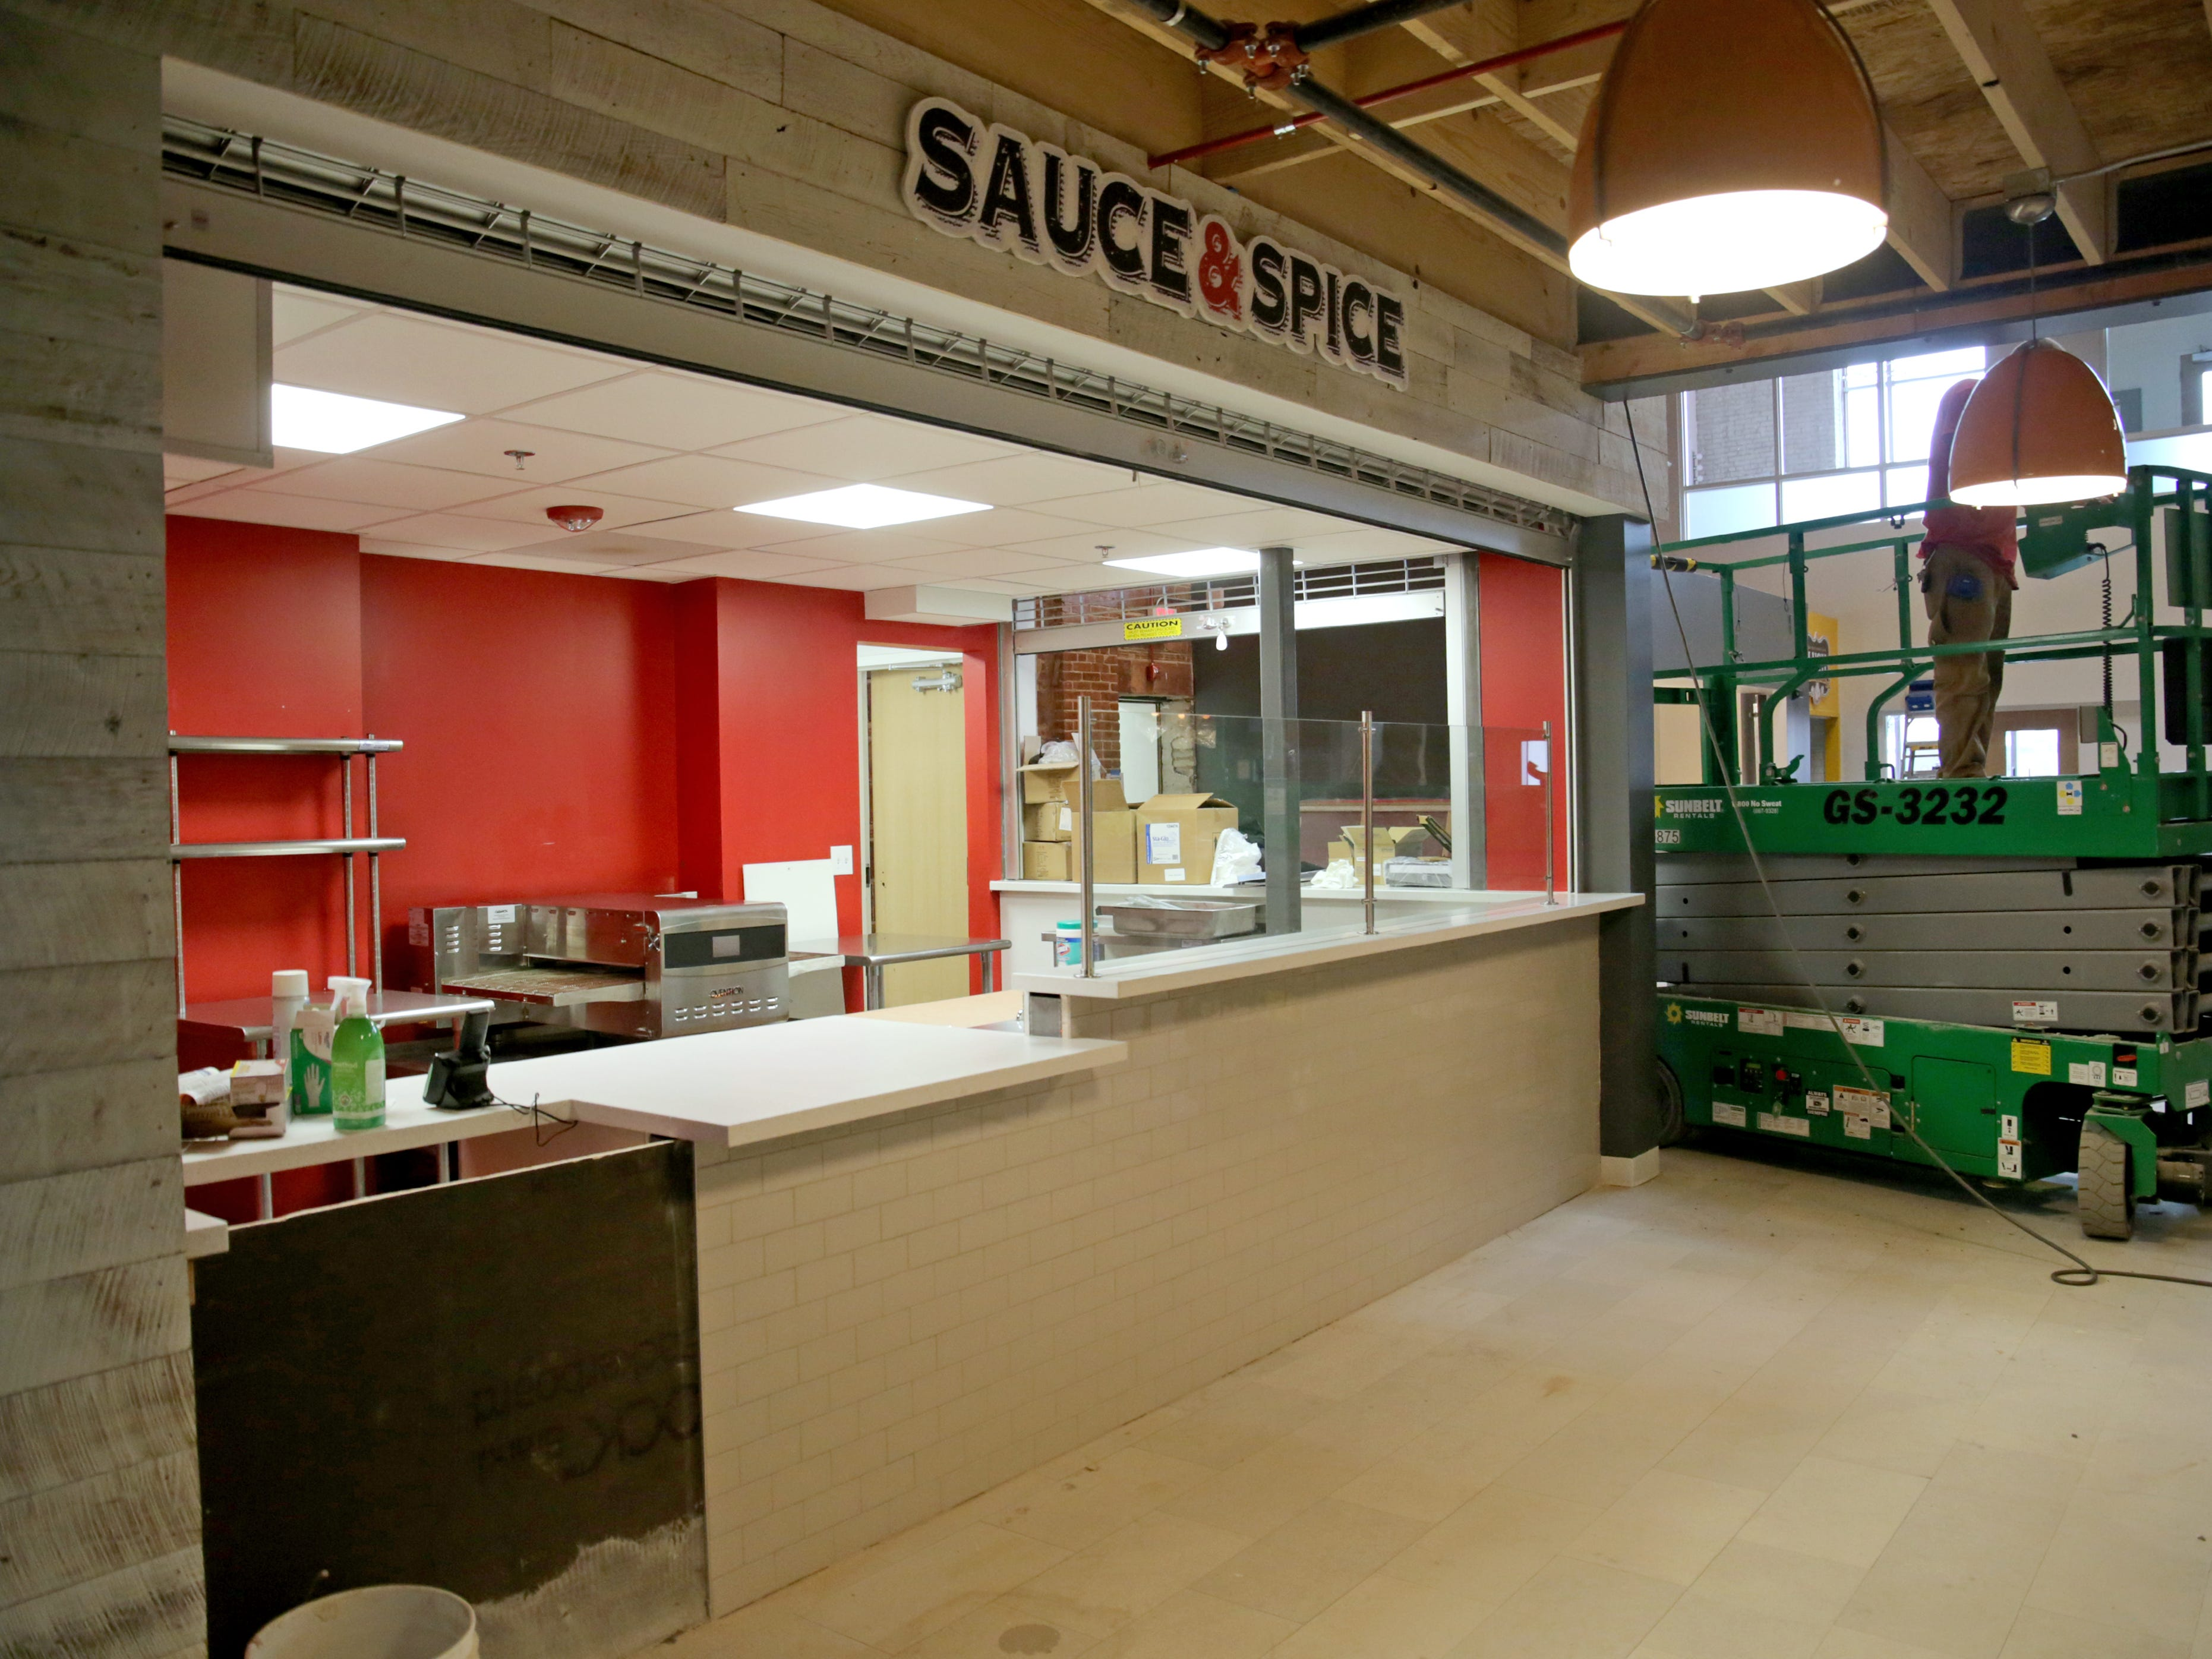 A Sauce & Spice, a pizza restaurant, will be on the first floor at Sherman Phoenix.